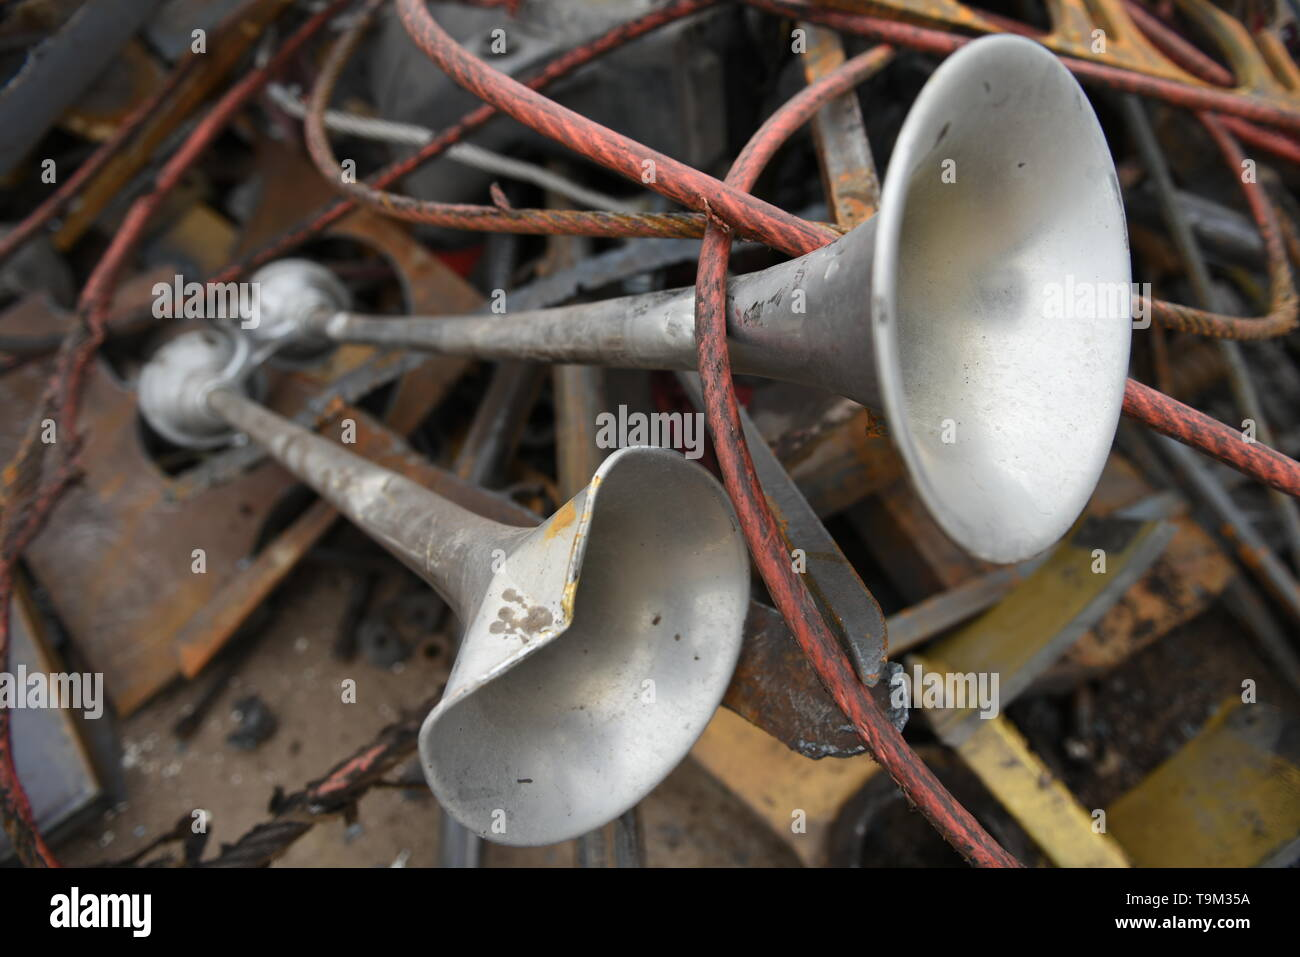 Scrap metal recycling, semi truck horns in a pile of discarded materials for recycling in the USA. - Stock Image